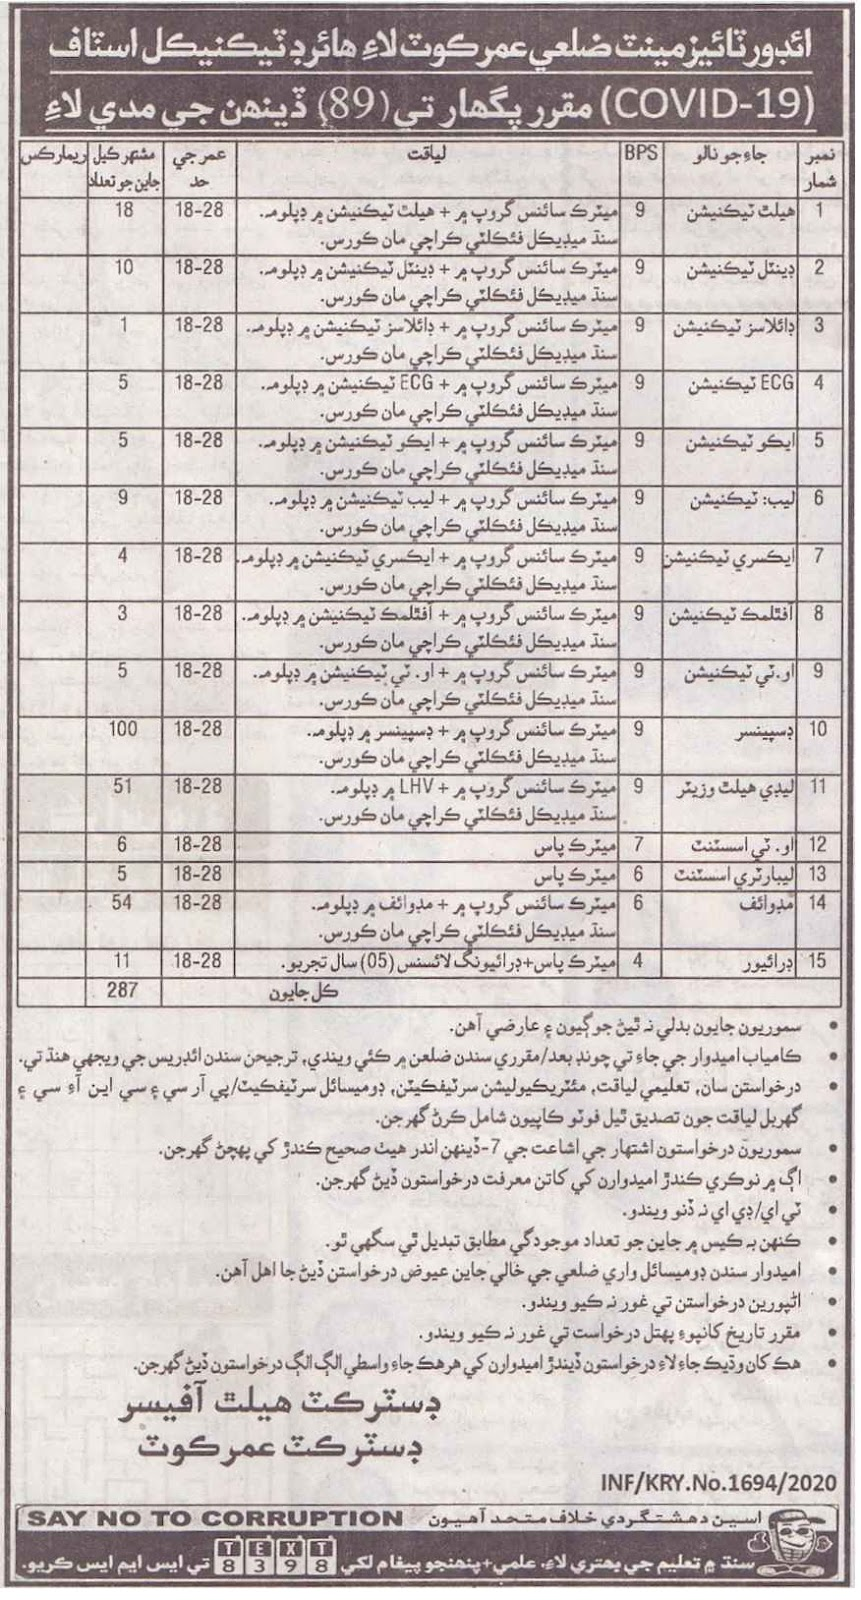 Health Department Government of Sindh Jobs 2020 for Health Technician, Dispenser, Laboratory Assistant & more